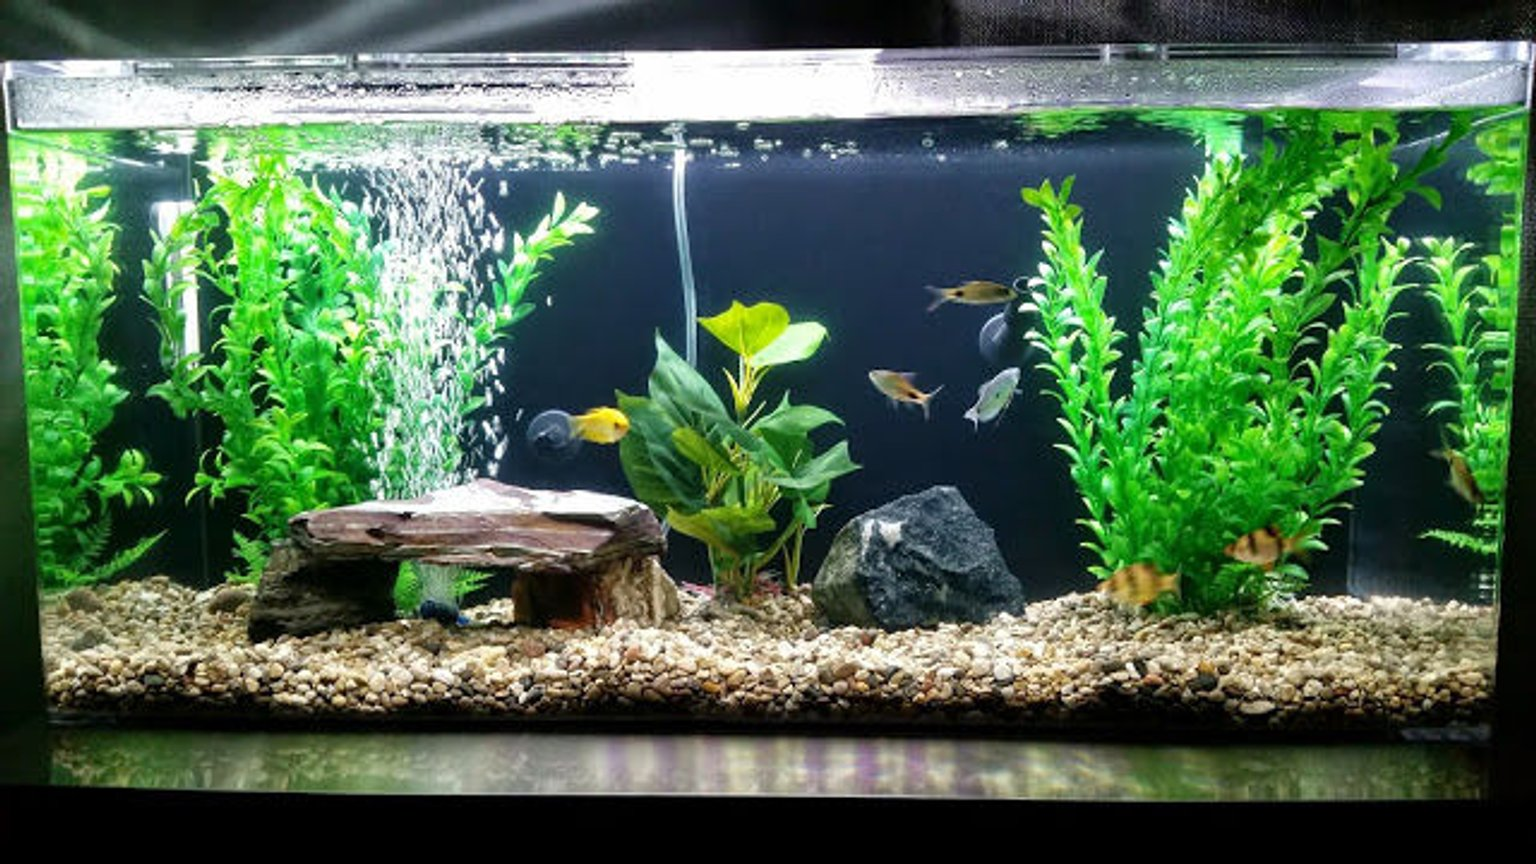 35 gallons freshwater fish tank (mostly fish and non-living decorations) - My tank!